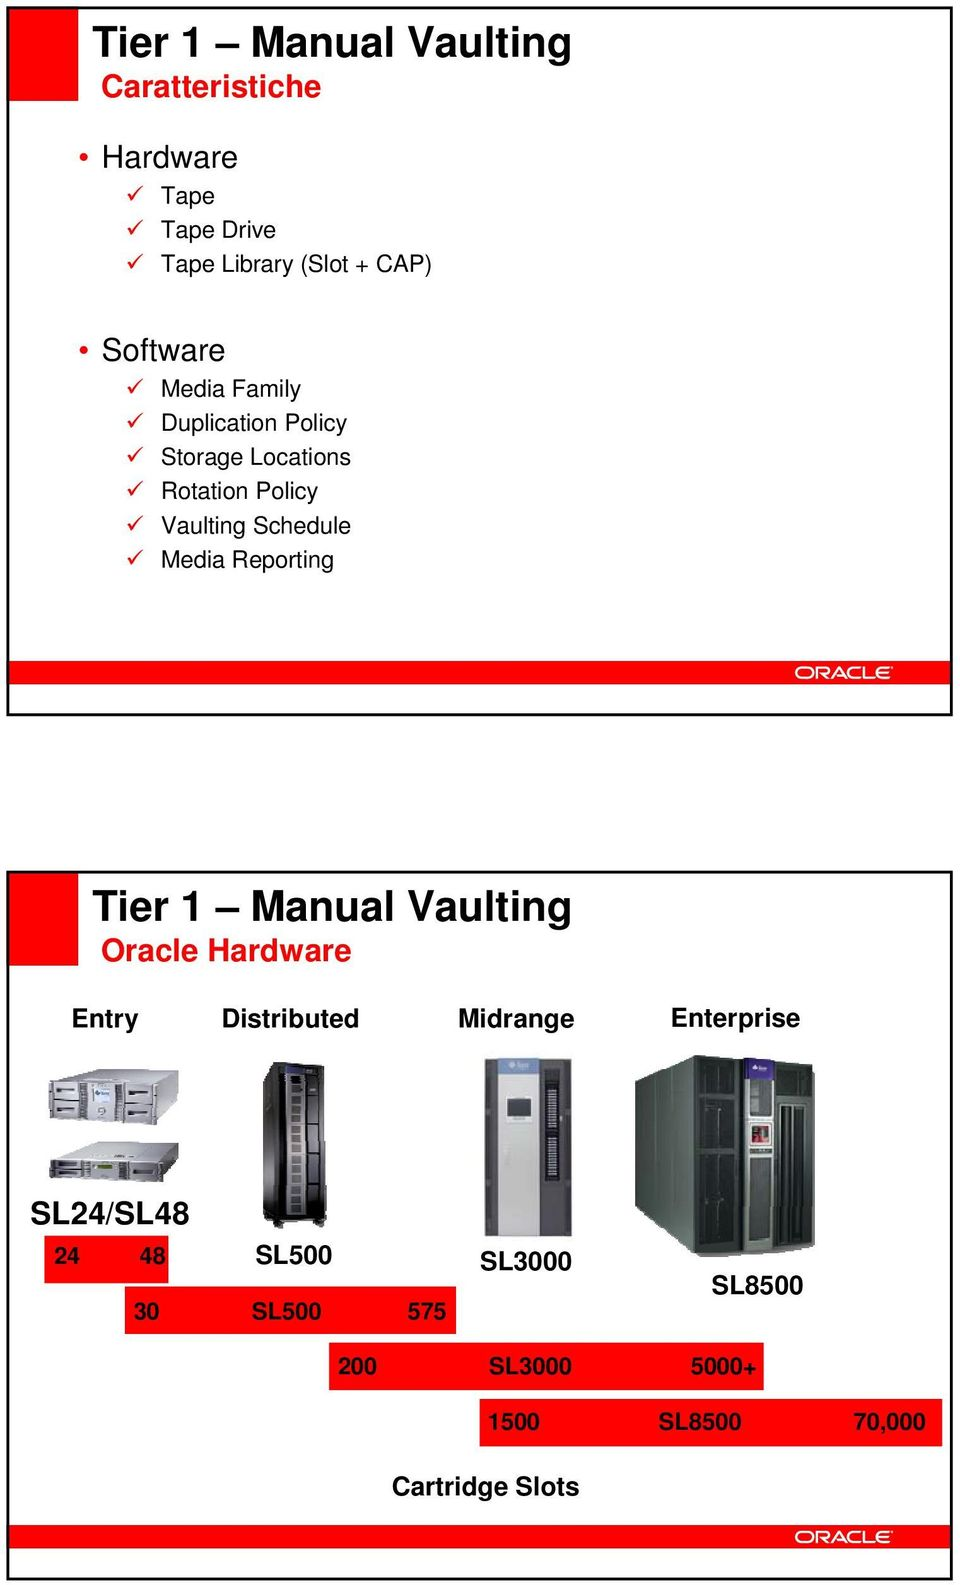 Media Reporting Tier 1 Manual Vaulting Oracle Hardware Entry Distributed Midrange Enterprise